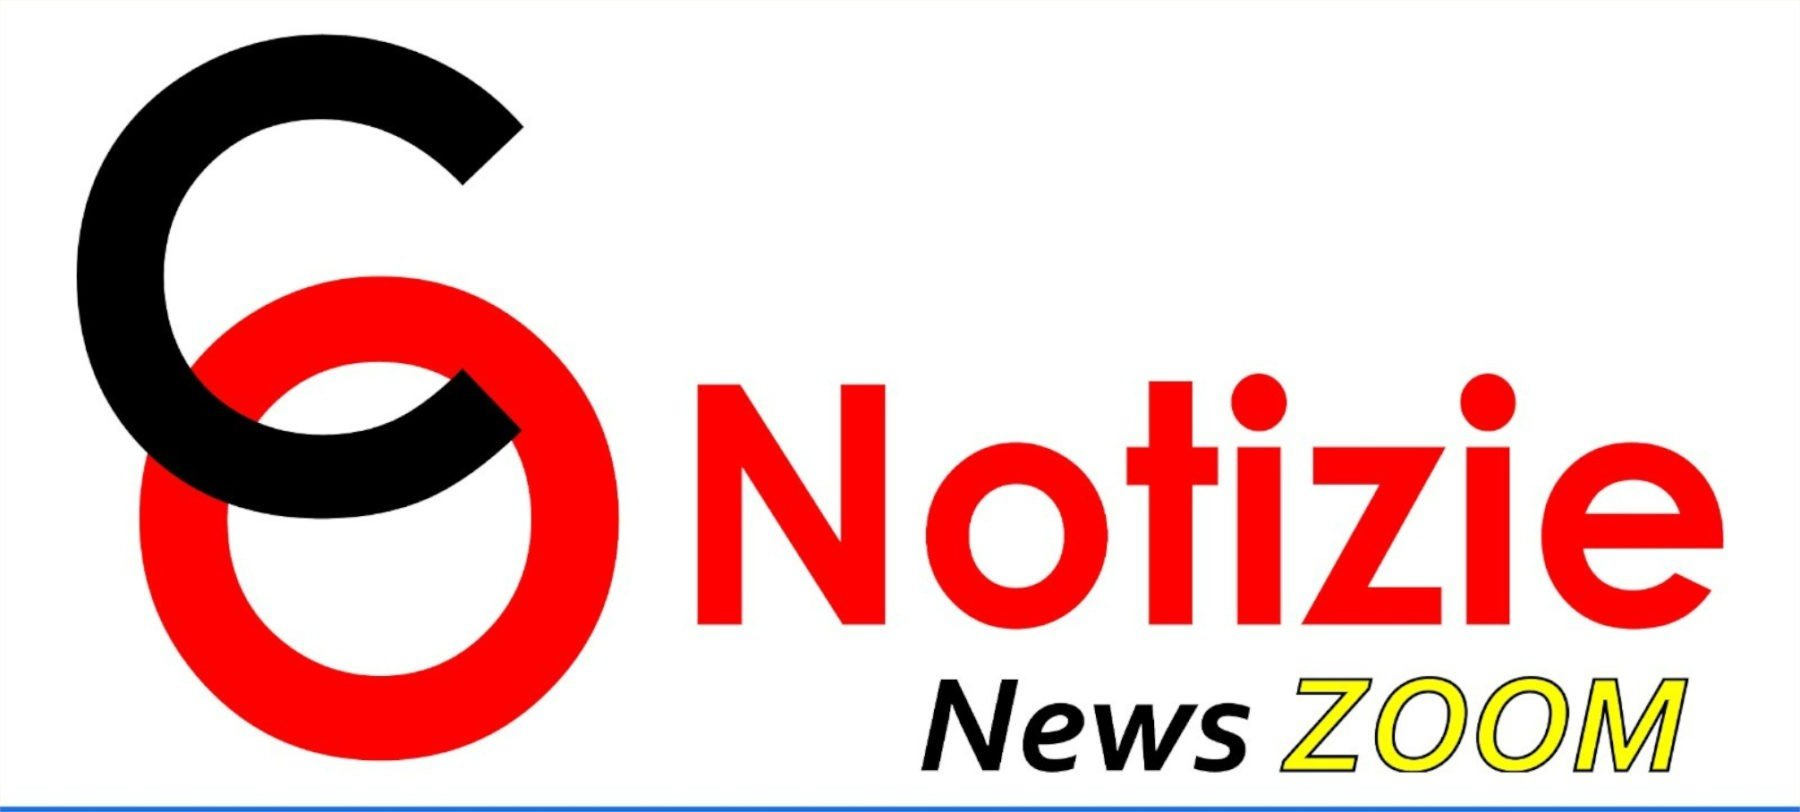 Co Notizie News Zoom